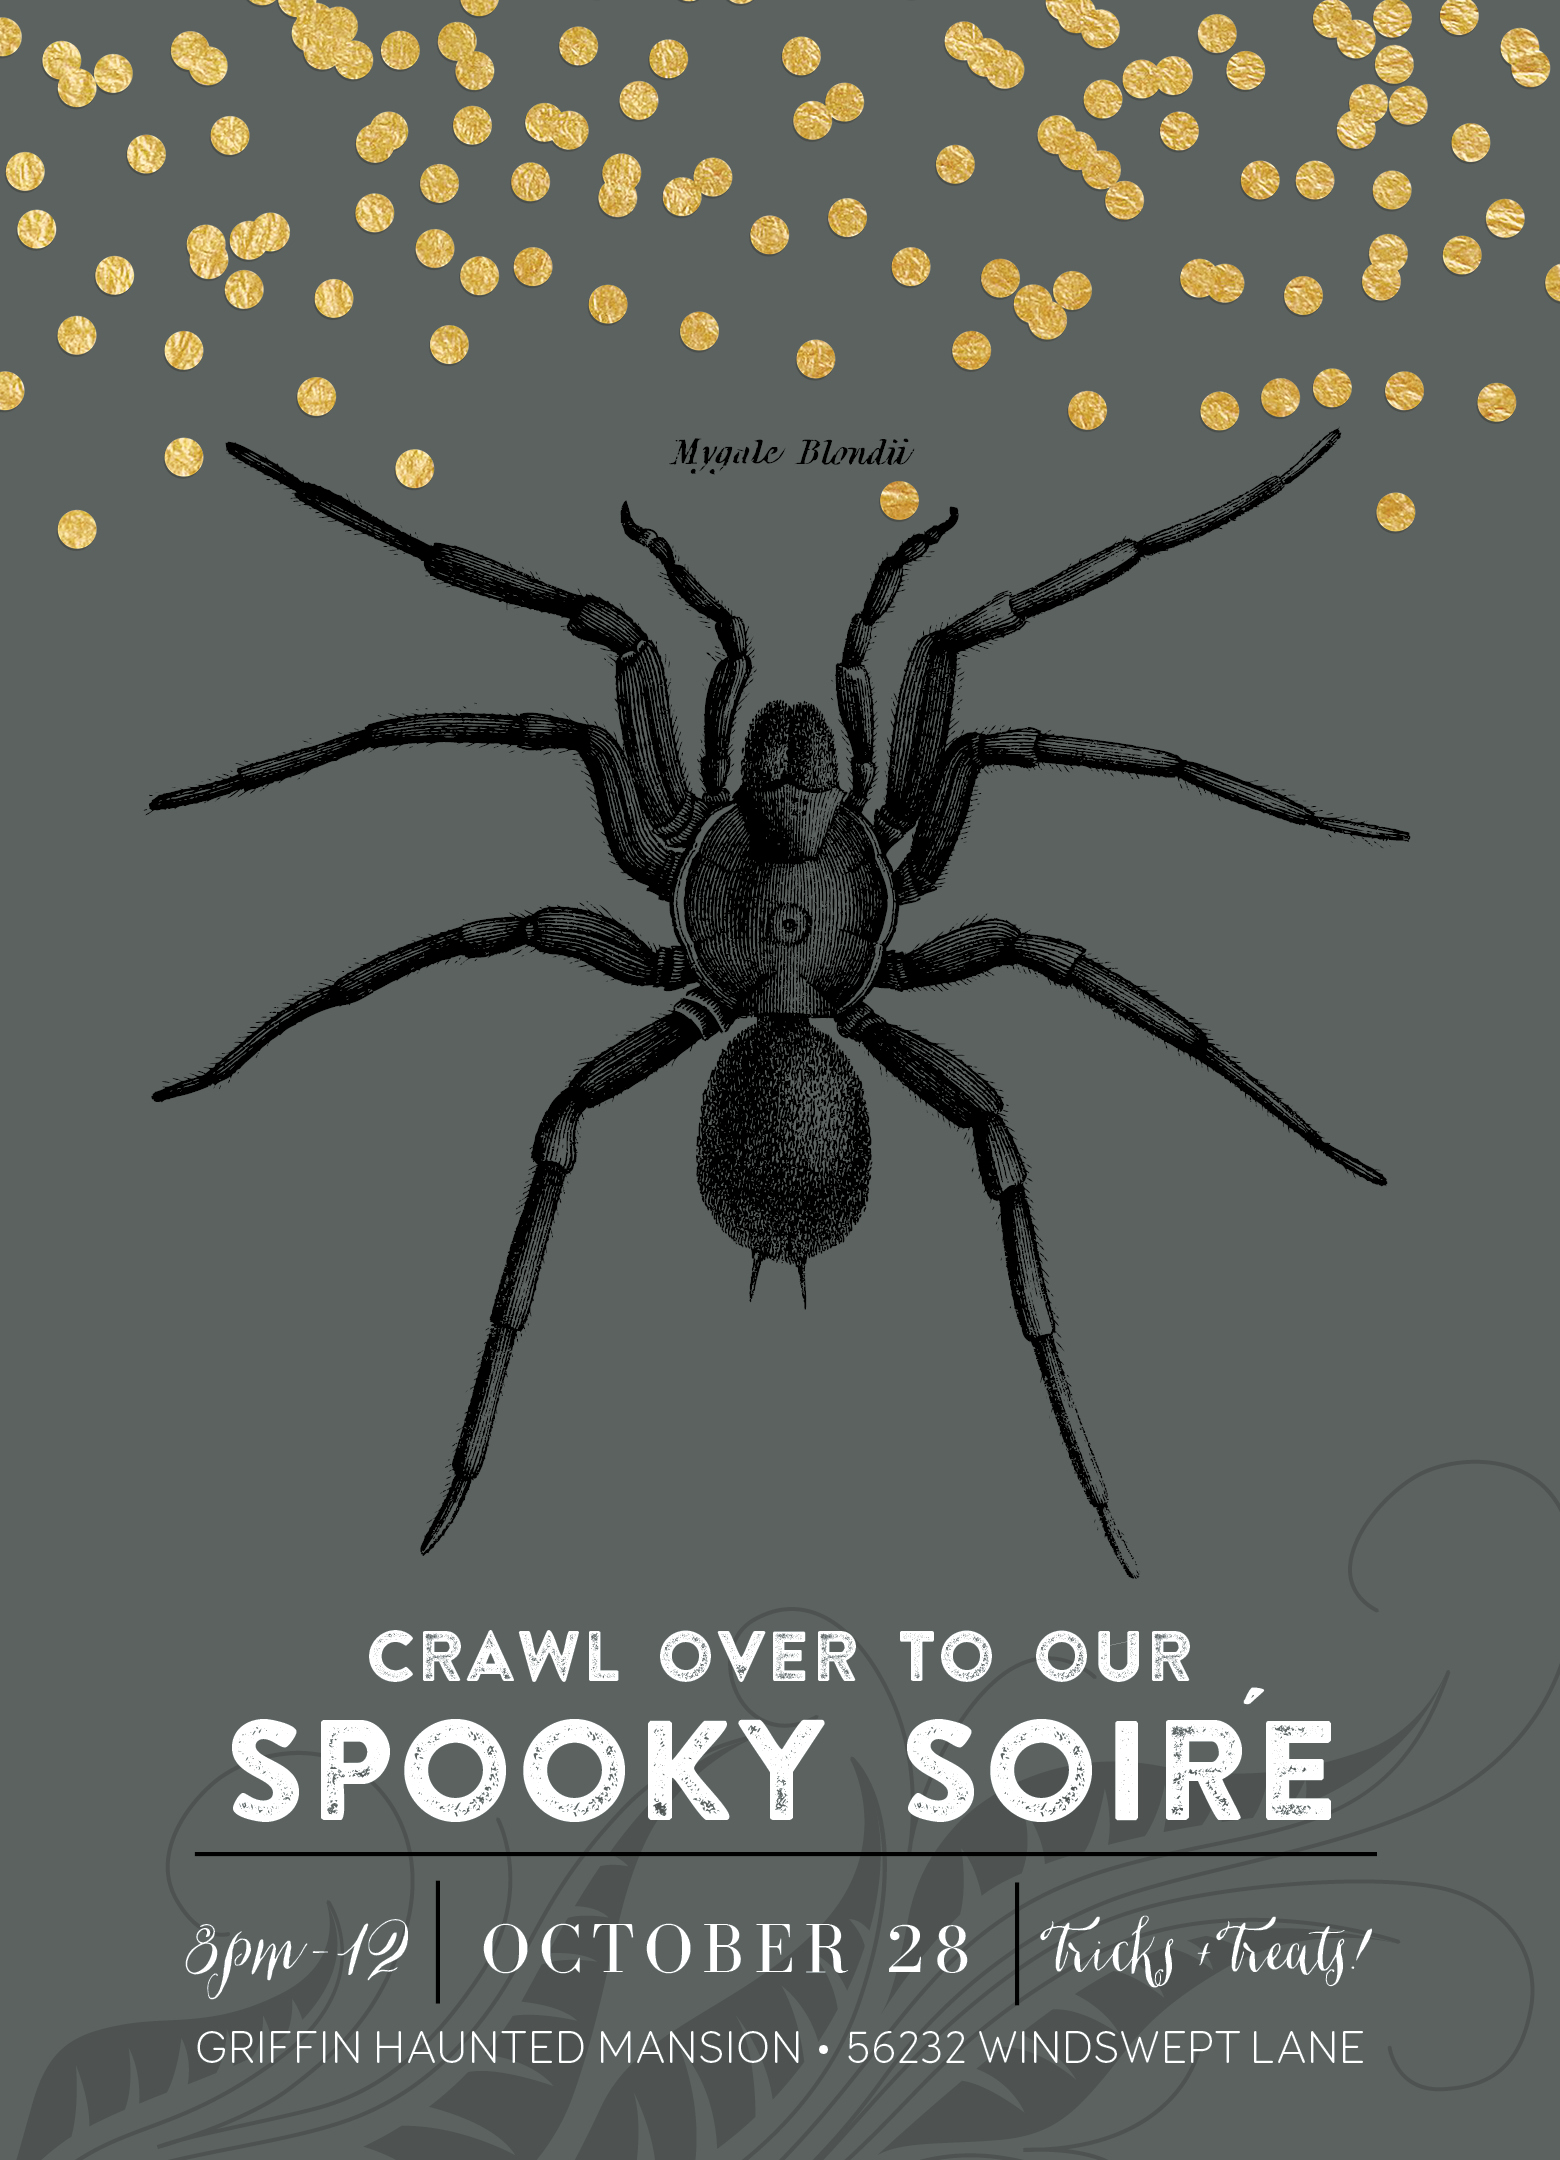 Spooky Spider Soire.jpg